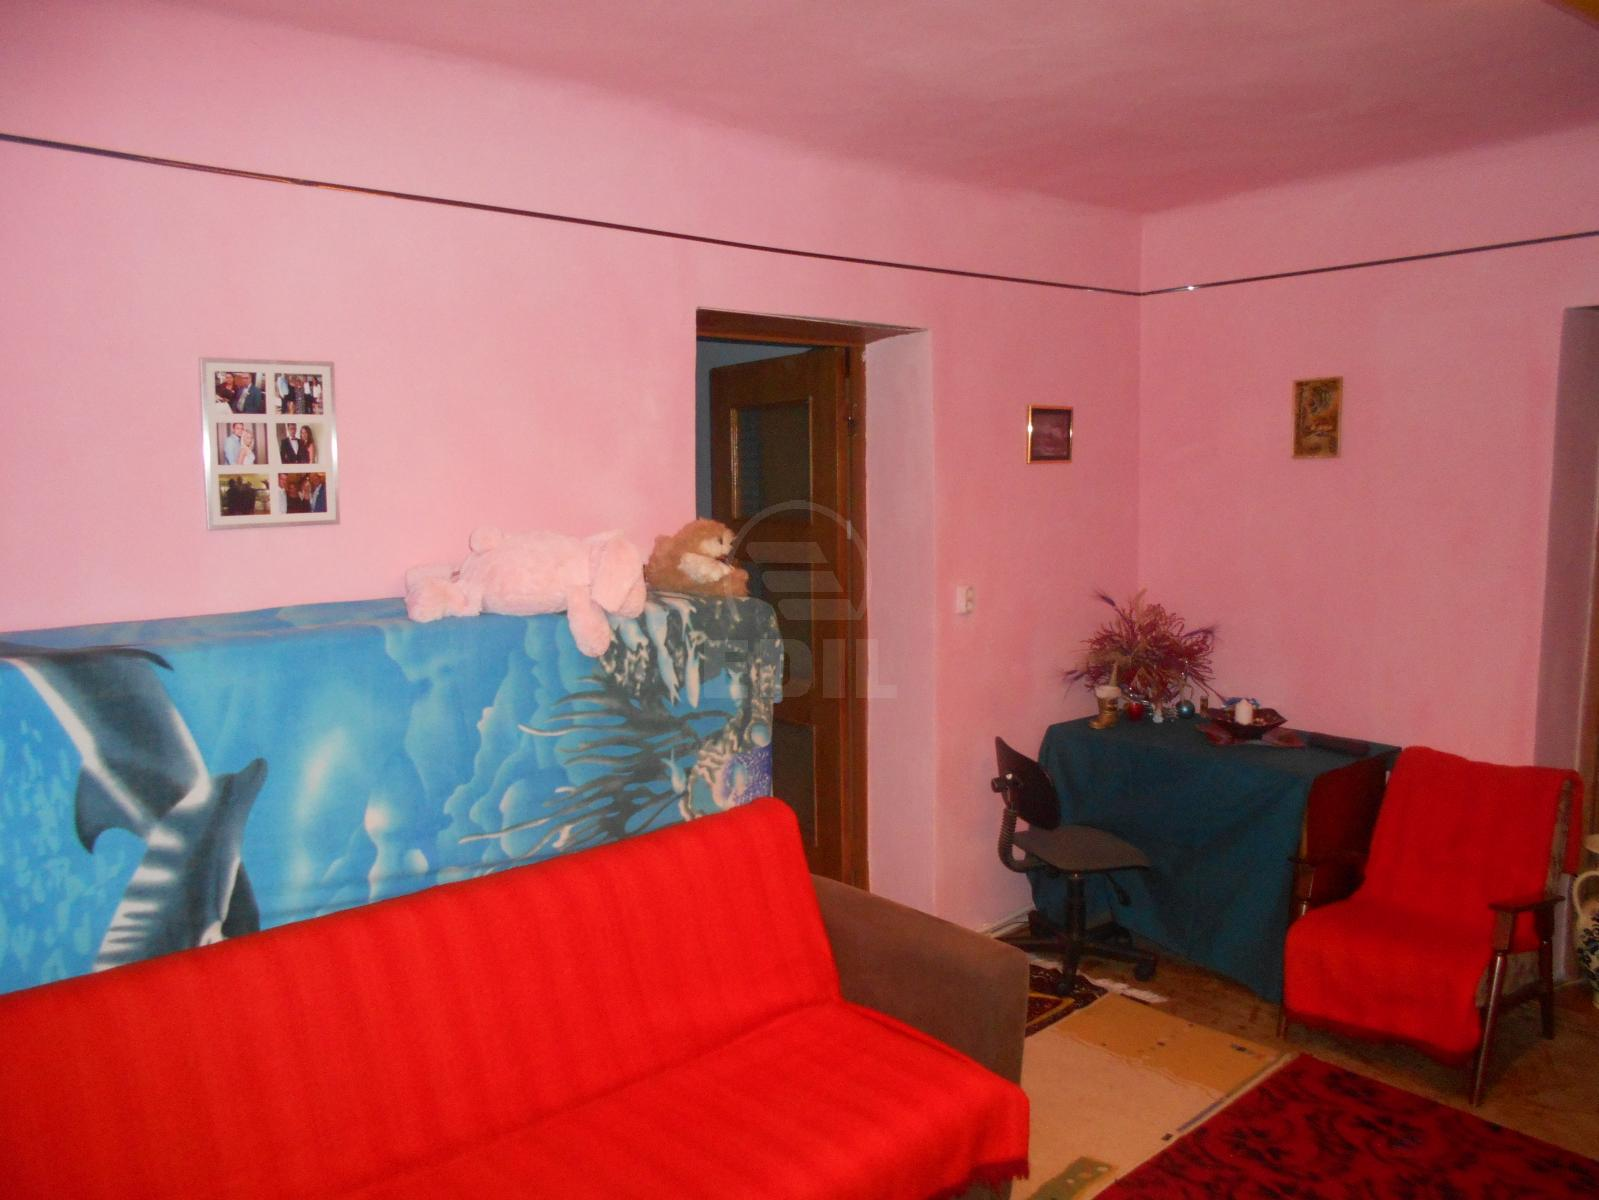 House for sale 3 rooms, CACJ271846-8